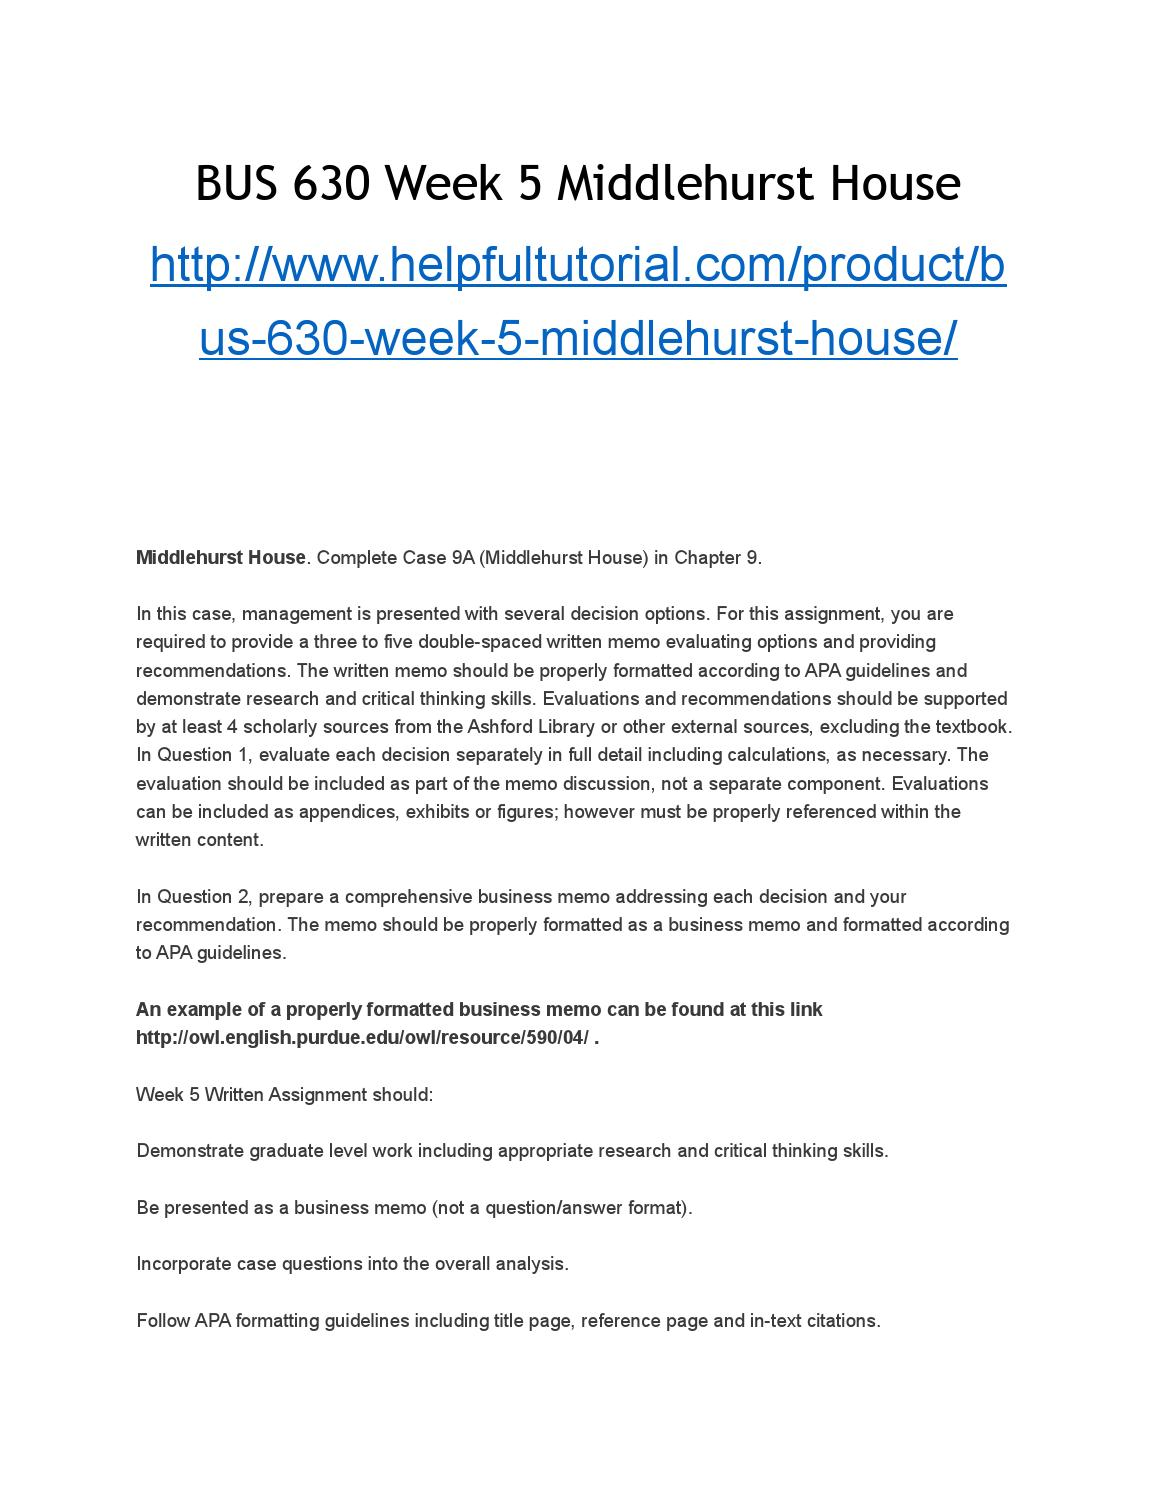 BUS 630 Week 5 Managerial Accounting Assignment (Middlehurst House )